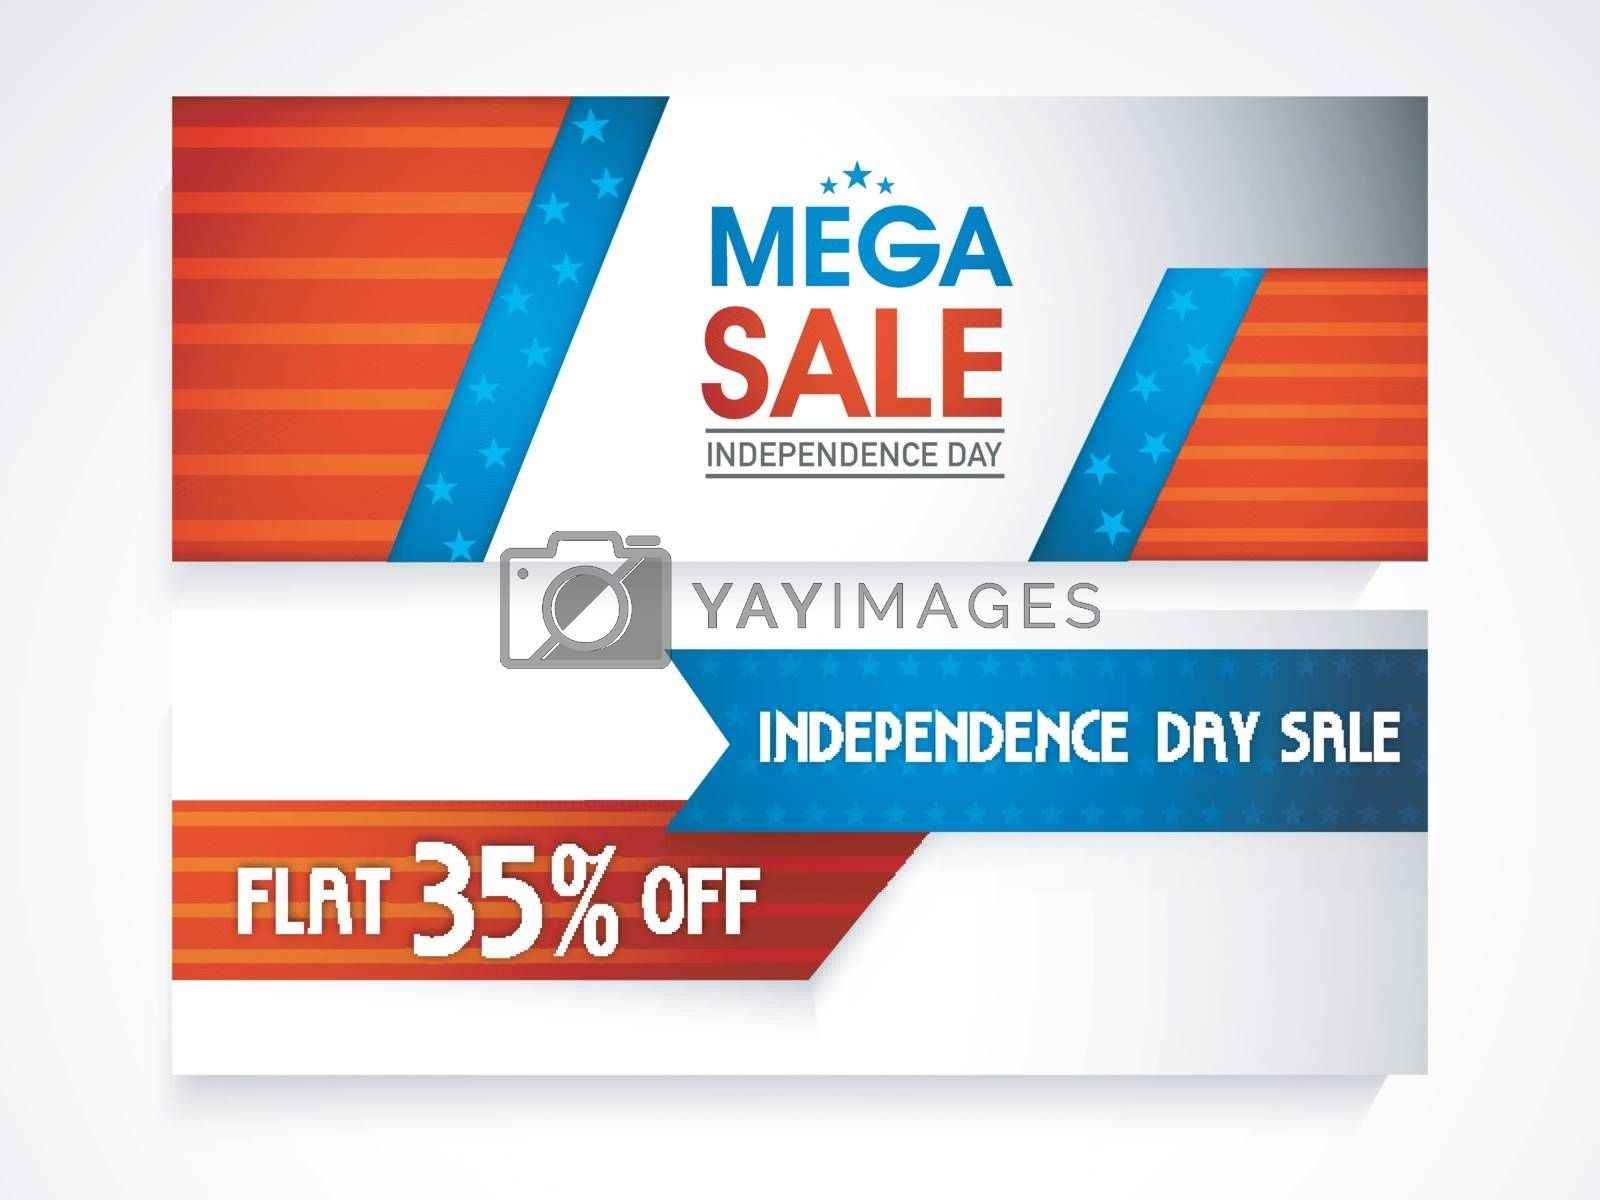 American Independence Day Mega Sale website headers with flat 35% Discount Off.